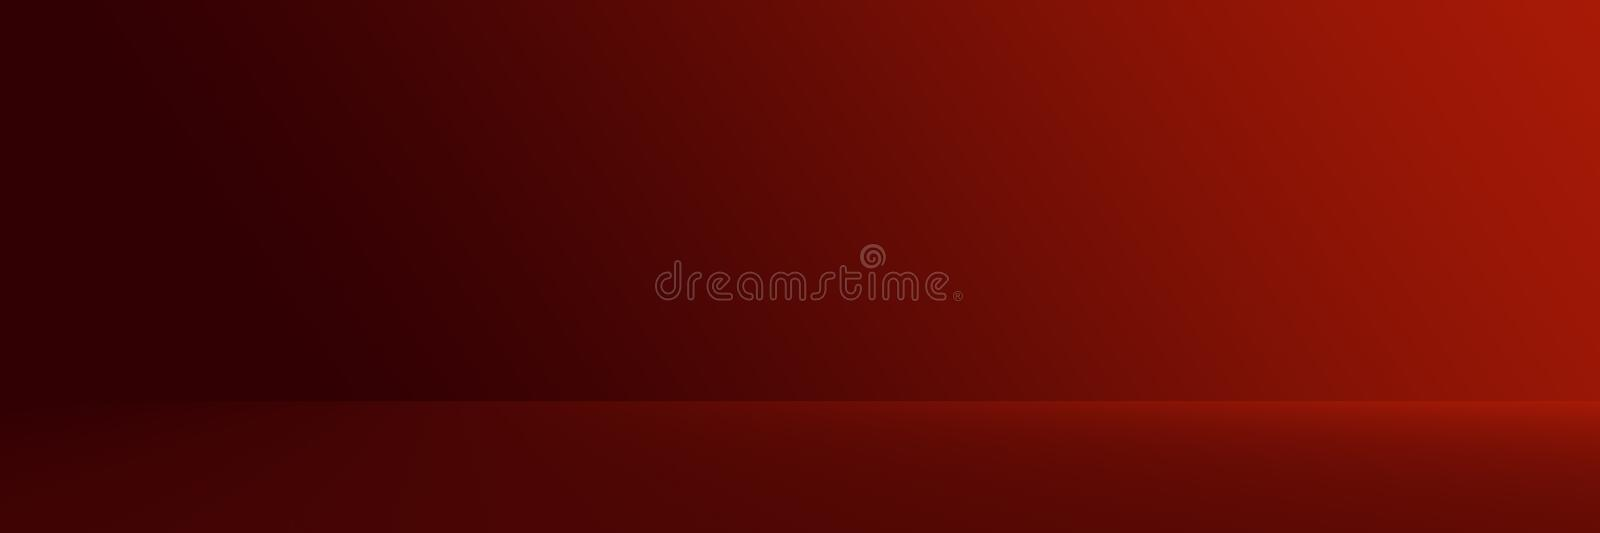 abstract black and red texture background stock illustration